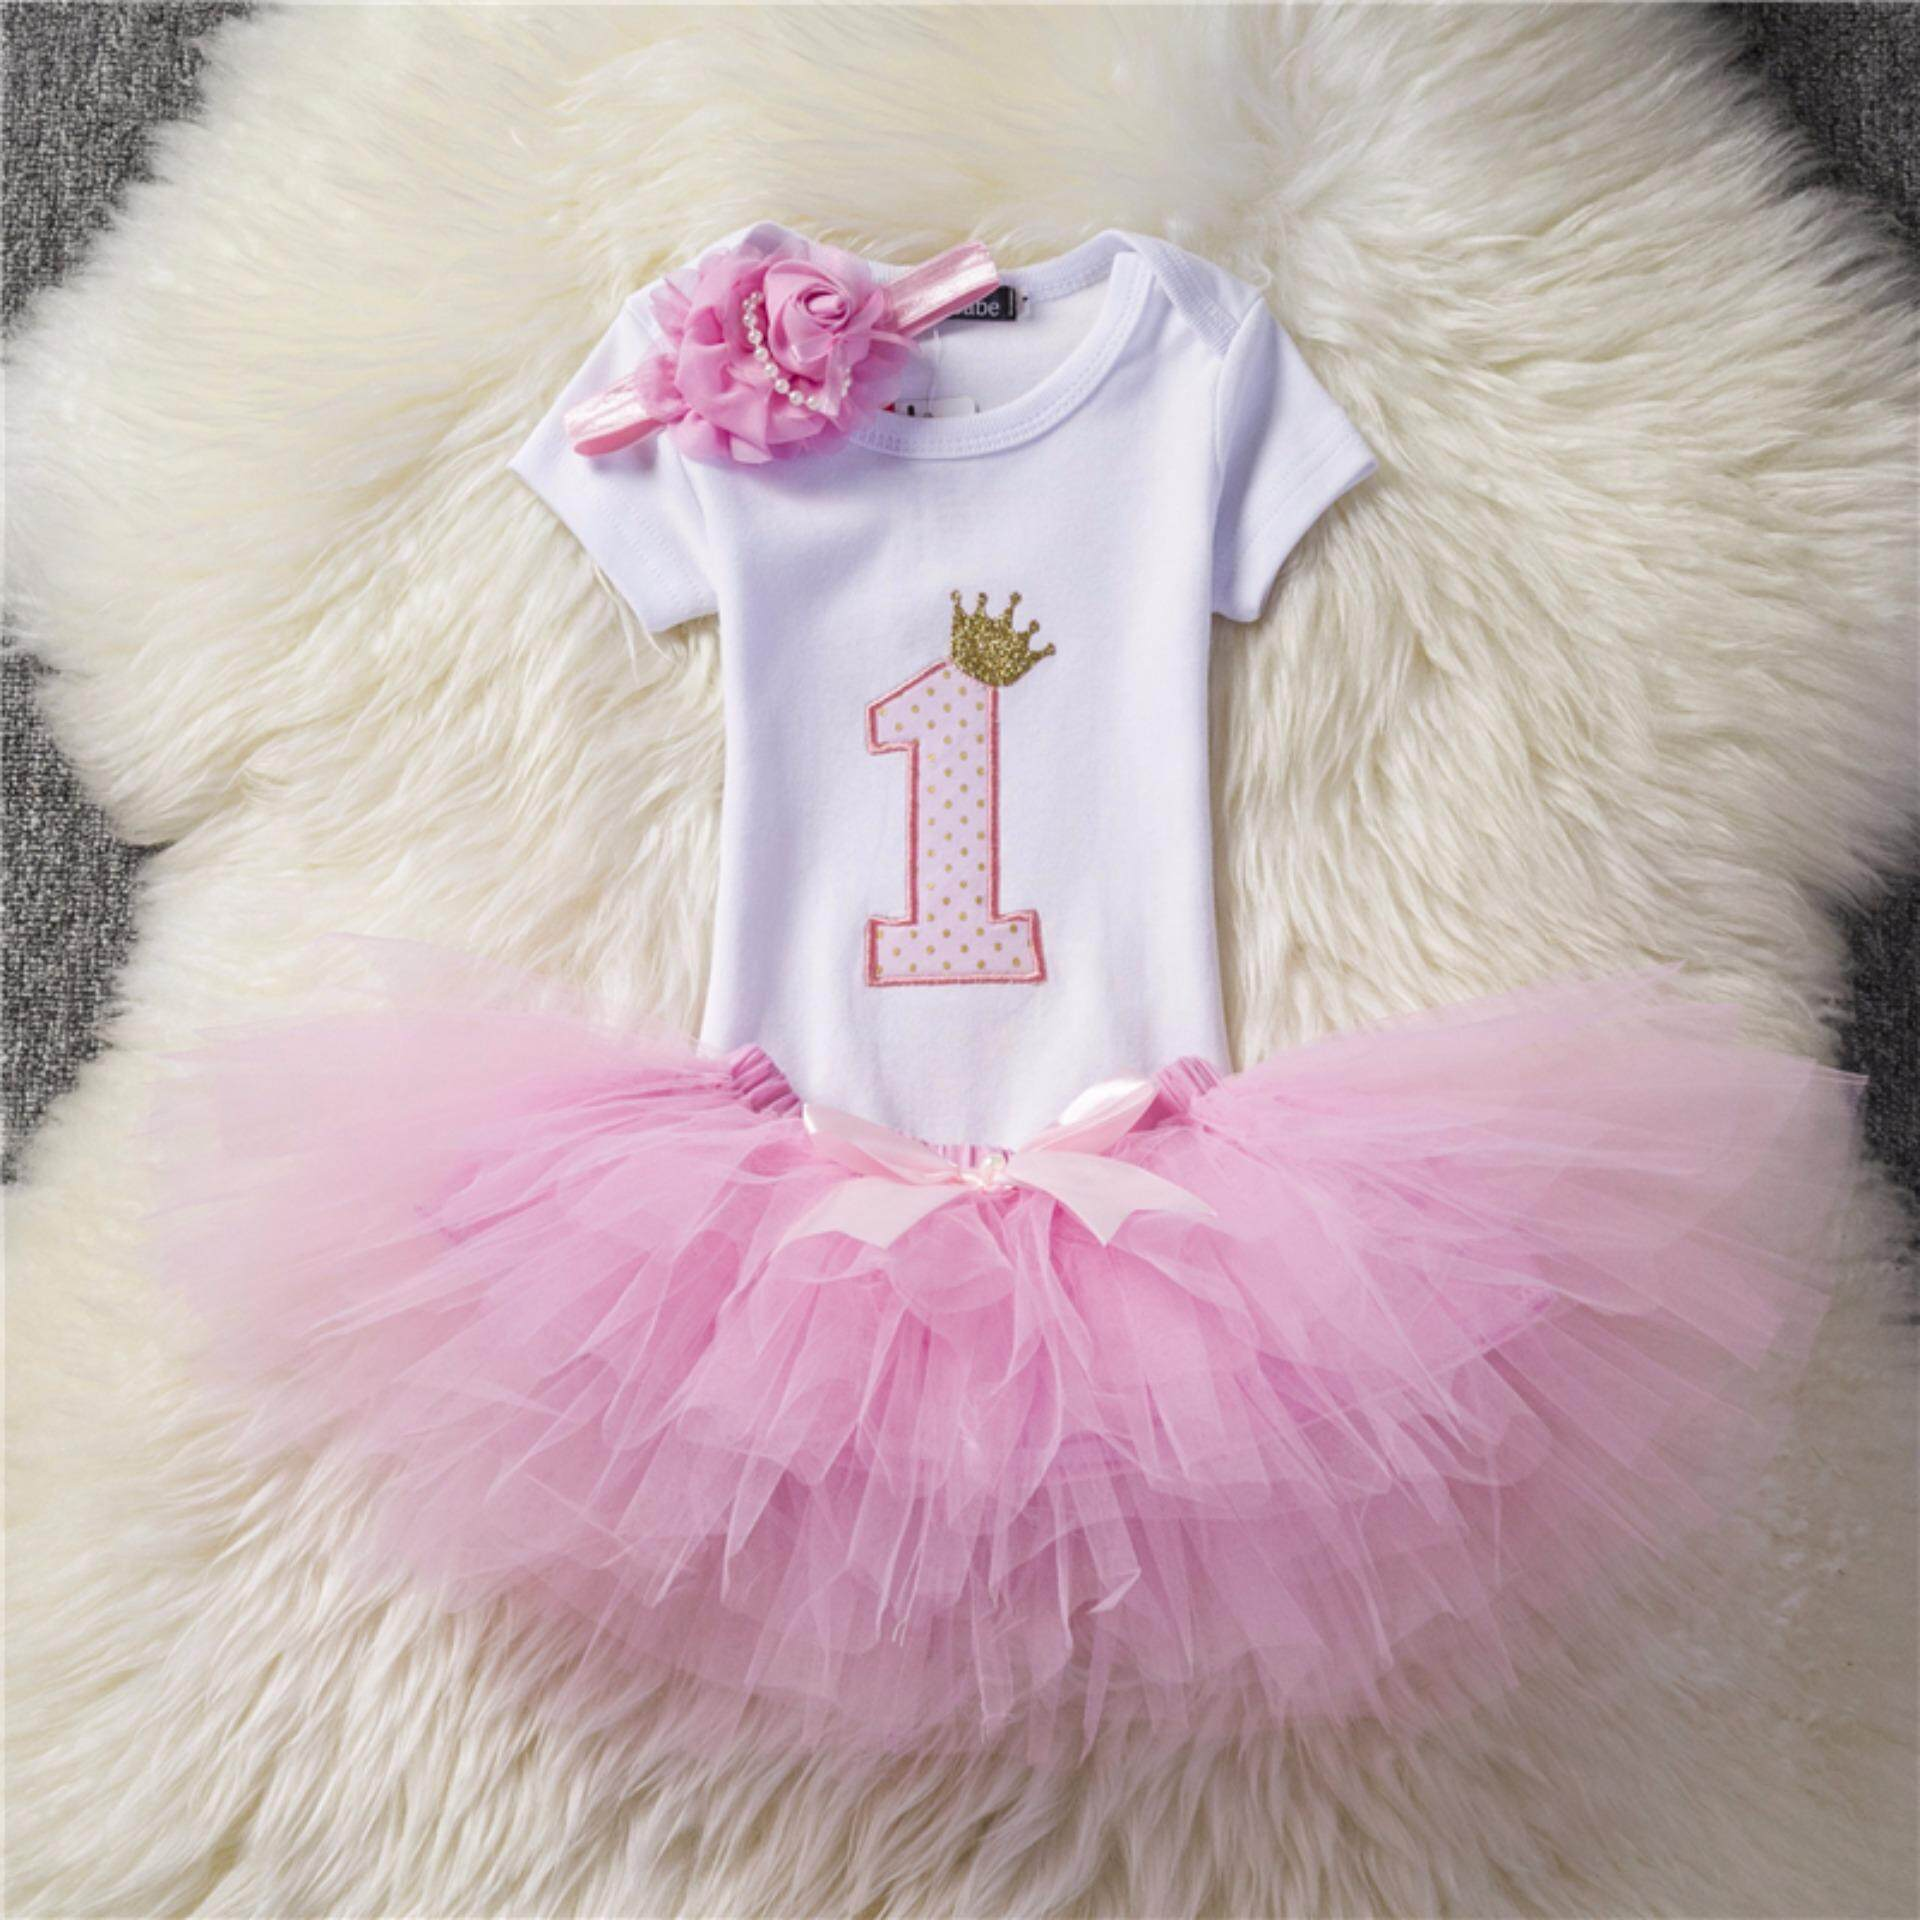 c21c3608fd0bf baby girl first birthday party clothing sets 3 pcs suits romper + skirt +  headband party princess dress 12 months baby birthday gift - intl